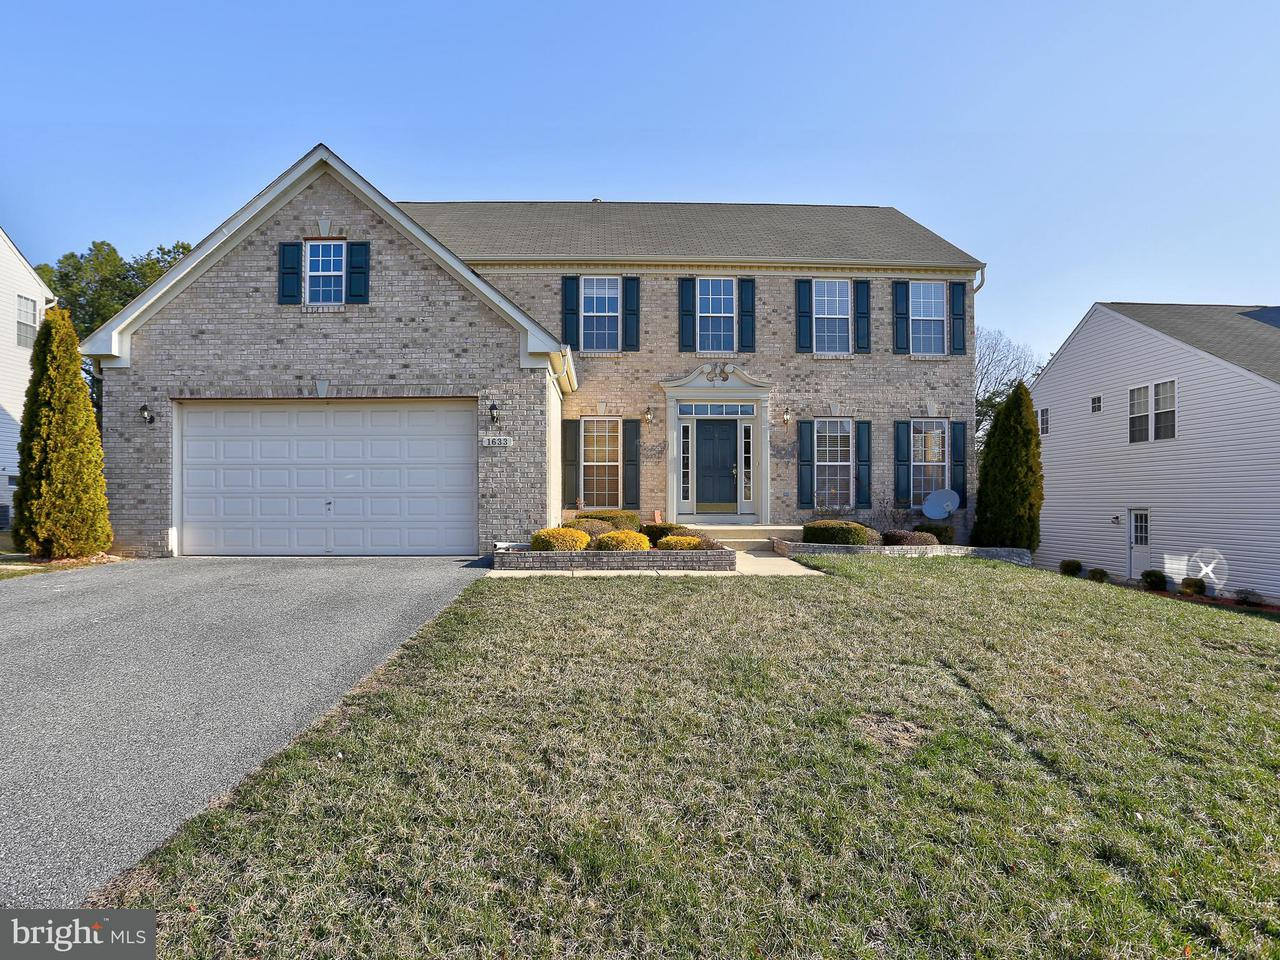 Single Family Home for Sale at 1633 Bear Paw Lane 1633 Bear Paw Lane Hanover, Maryland 21076 United States